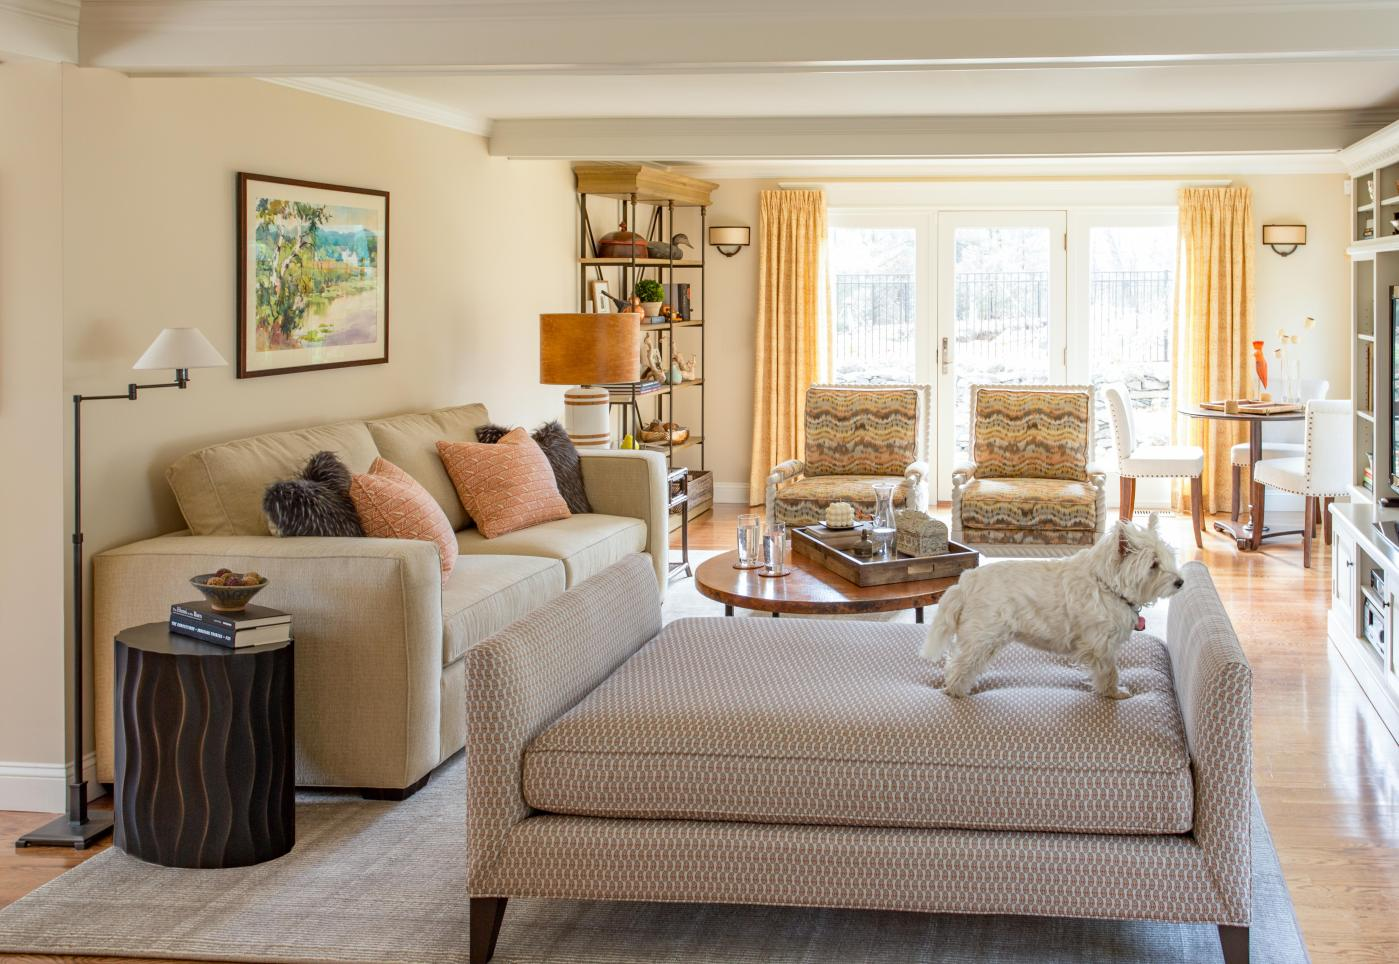 Project Reveal: Brown Moves Down, A Home Lights Up   Kelly Rogers Interiors   Interiors for Families